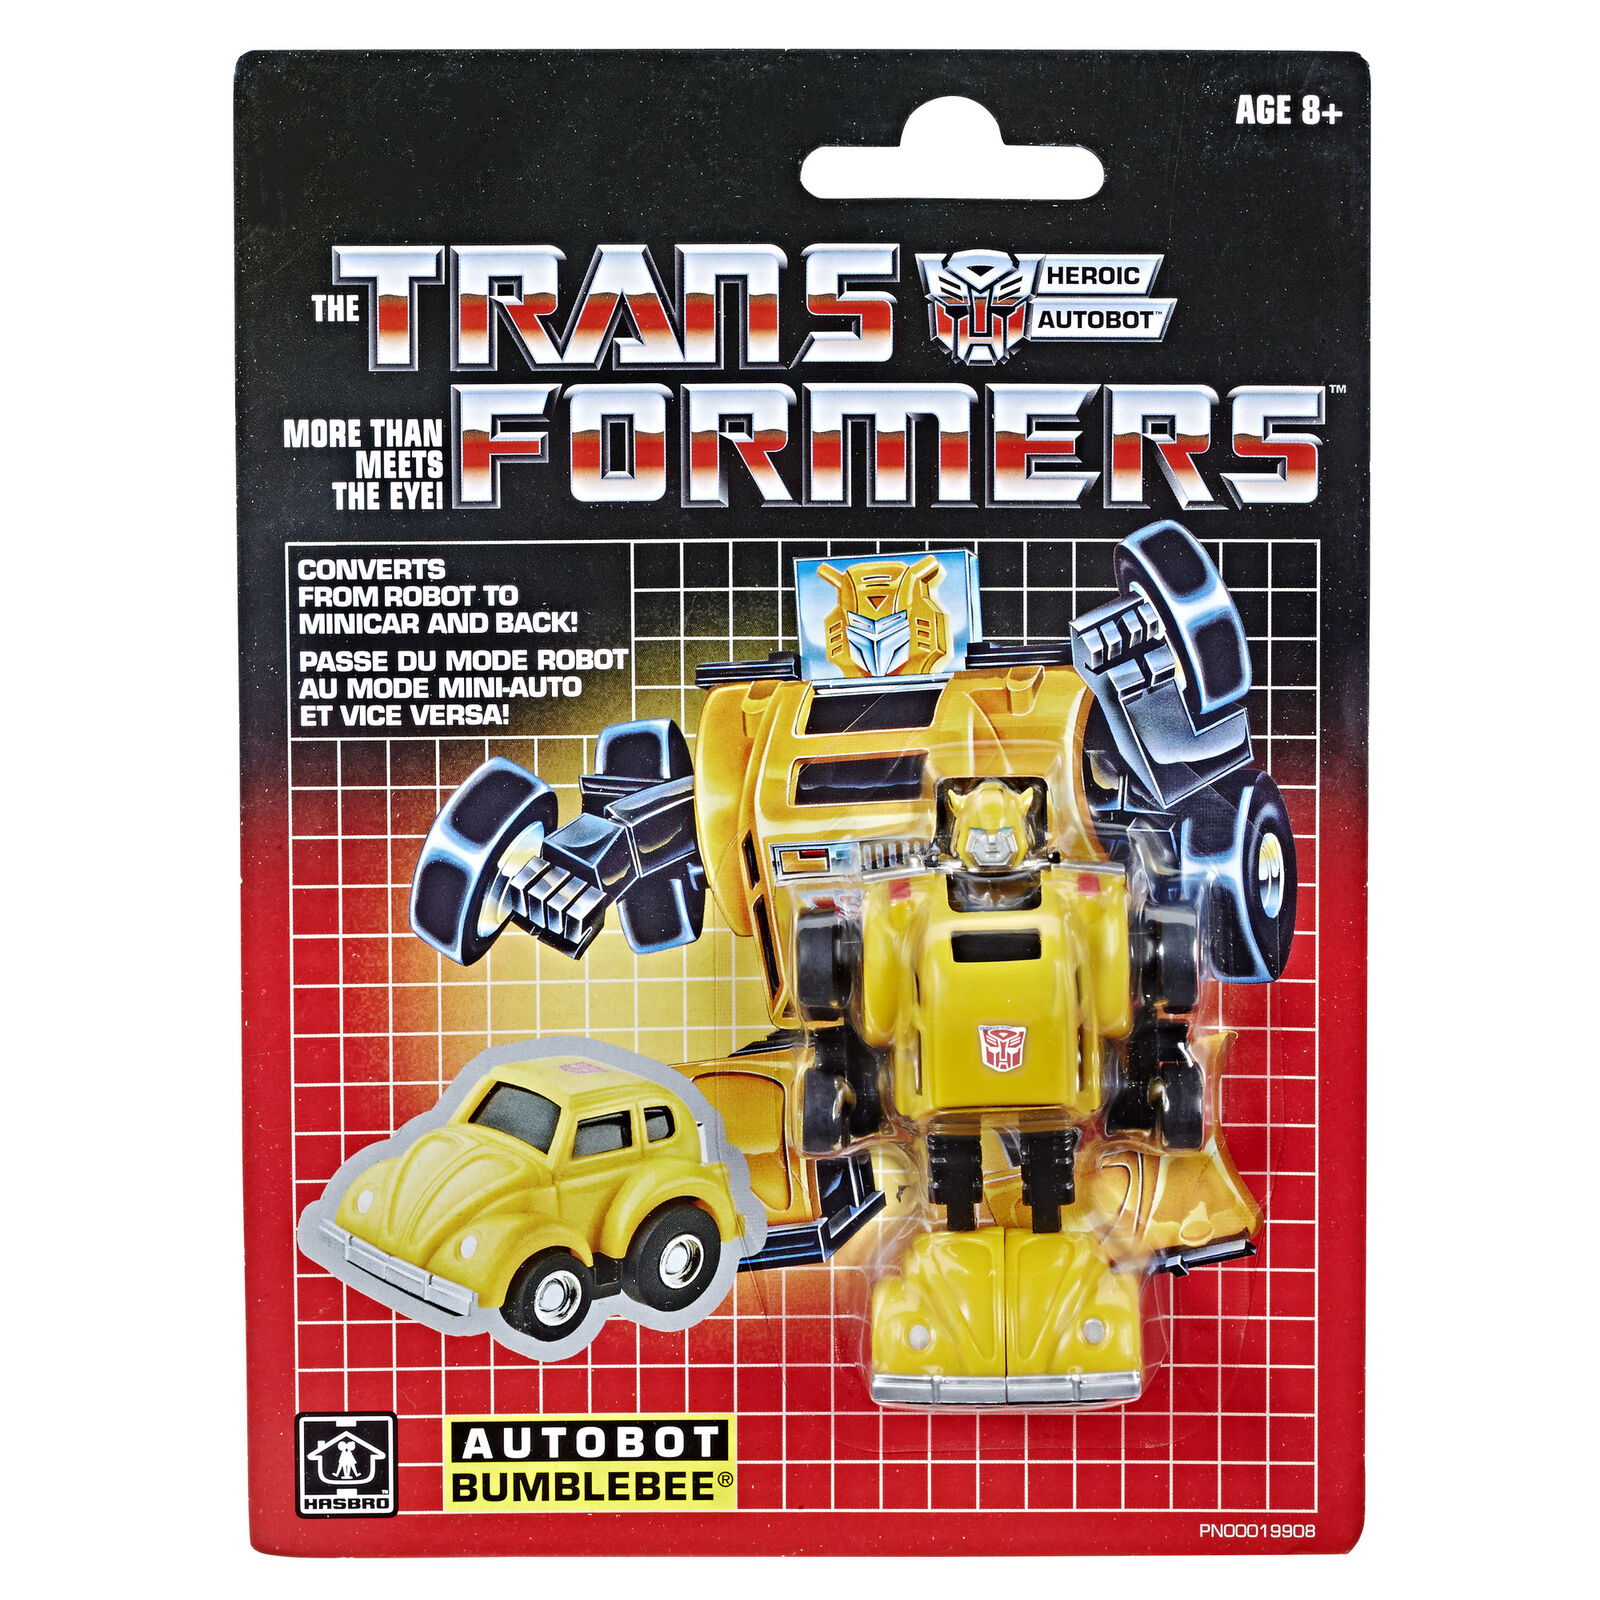 2018 Transformers Minibot Autobot BUMBLEBEE Walmart Exclusive Sealed NEW